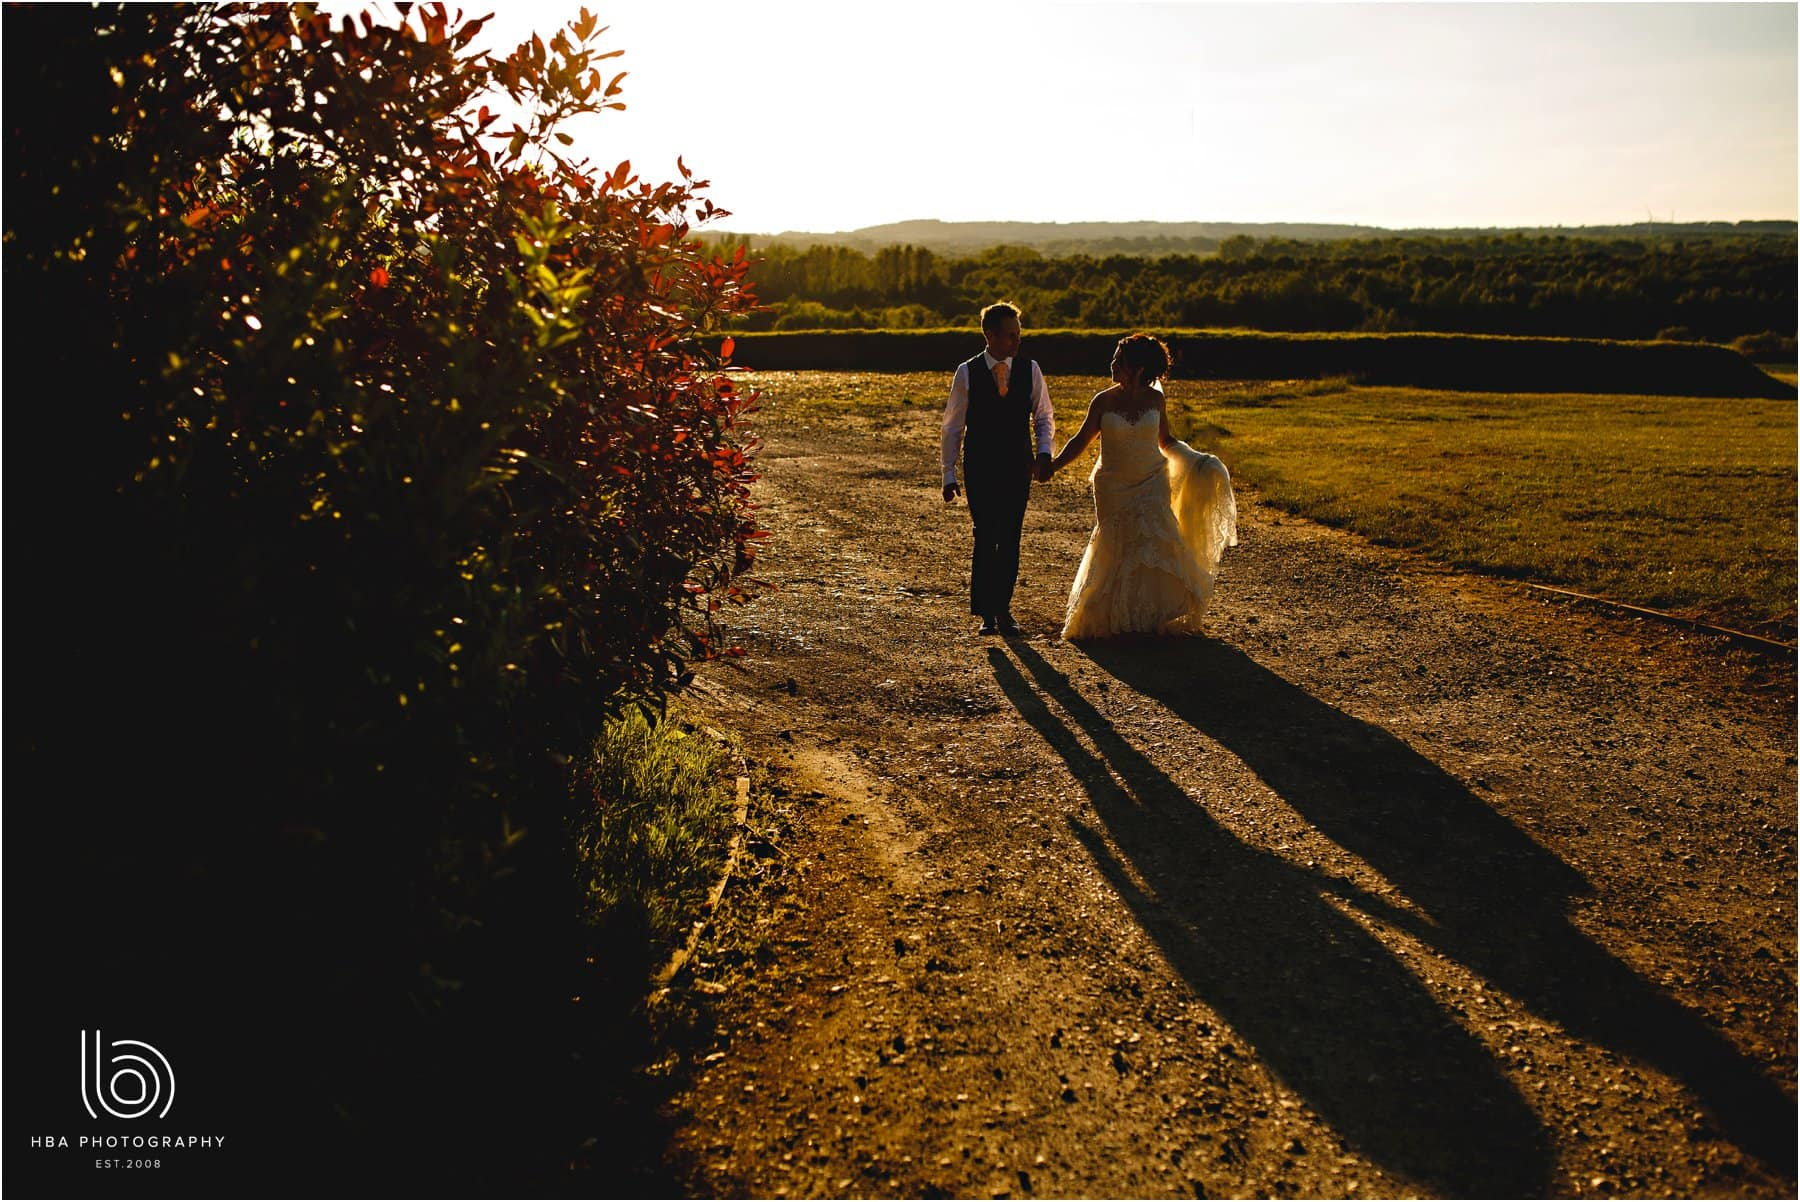 the bride & groom in the evning sun